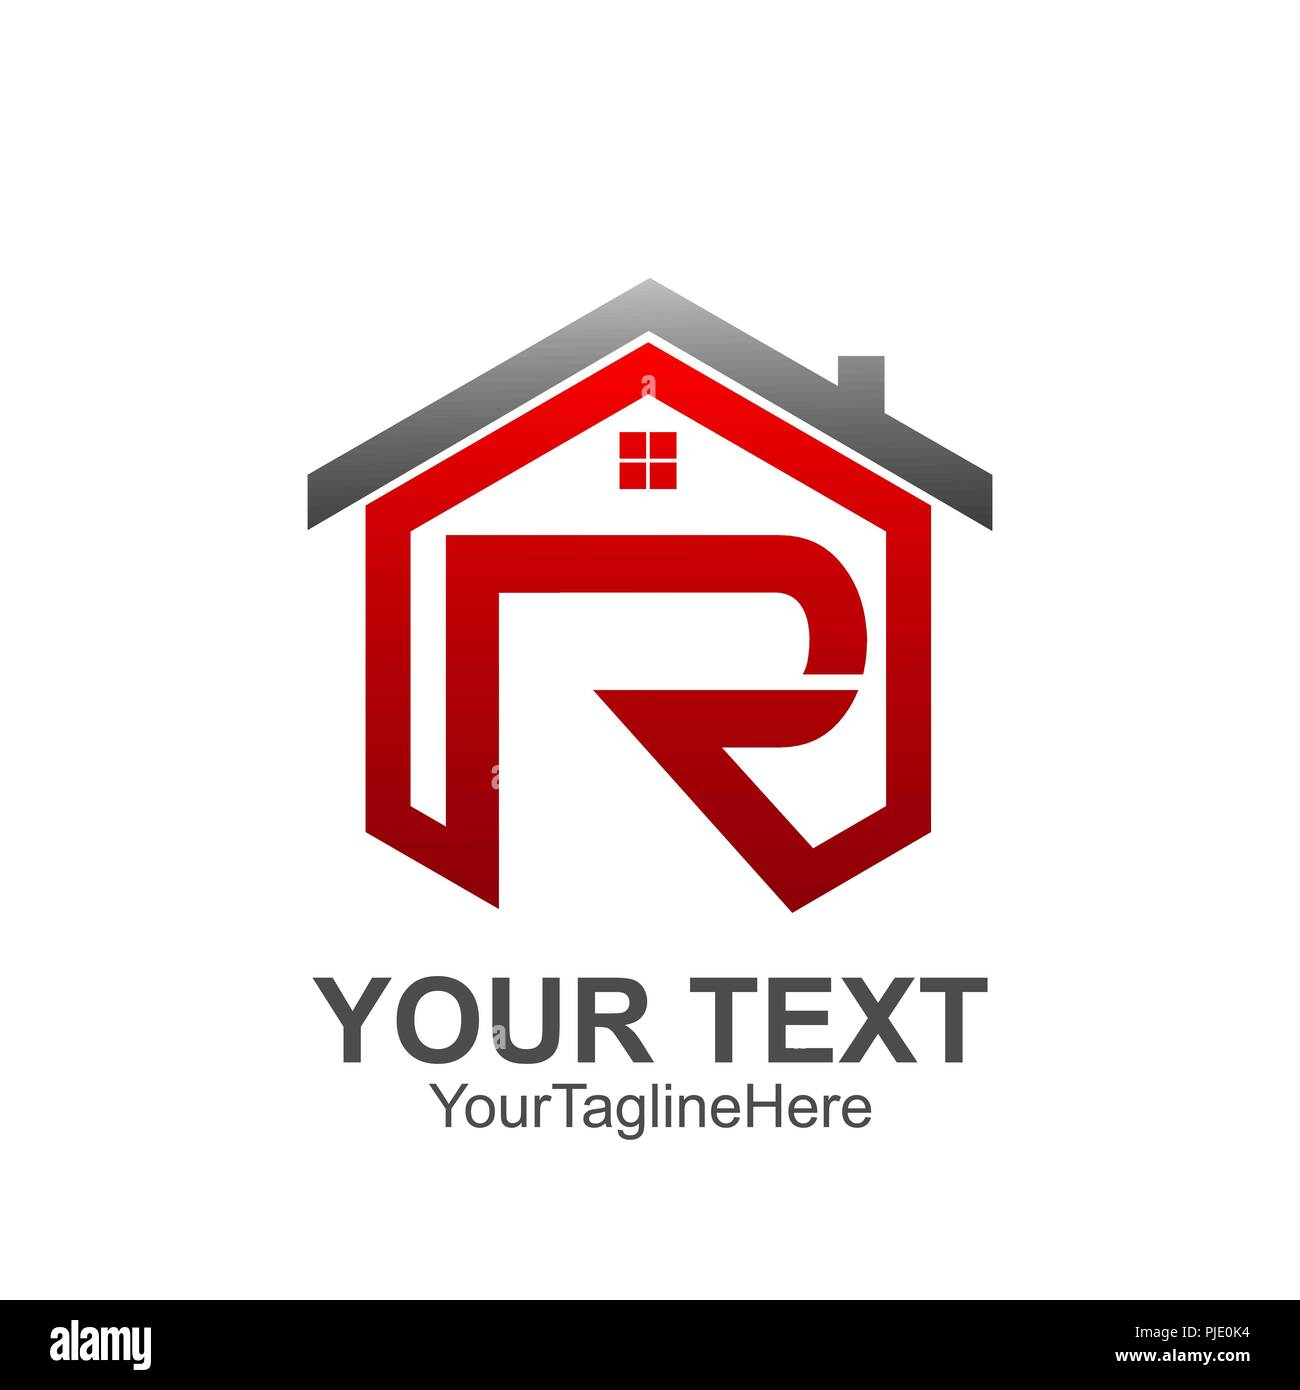 initial letter r logo template colored red grey home design for business and company identity